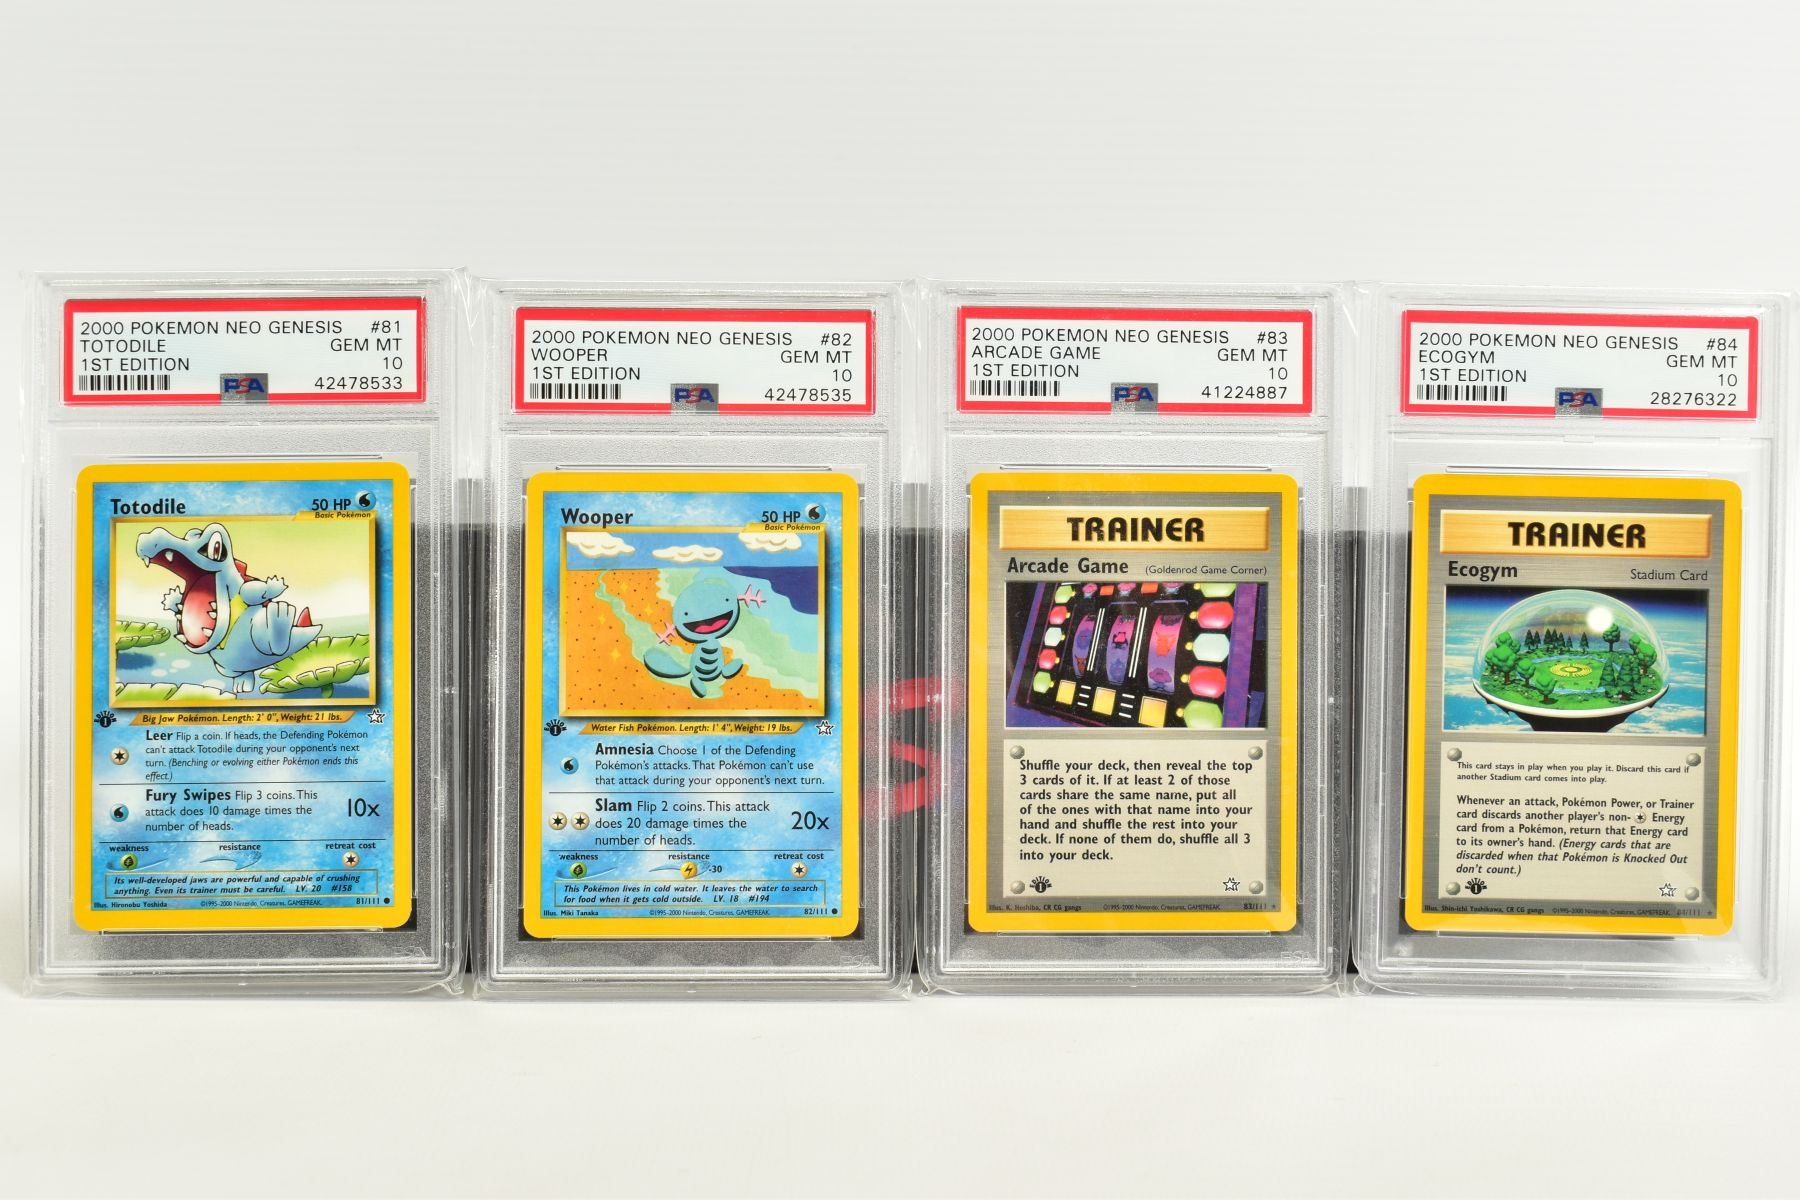 A QUANTITY OF PSA GRADED POKEMON 1ST EDITION NEO GENESIS SET CARDS, all are graded GEM MINT 10 and - Image 17 of 24